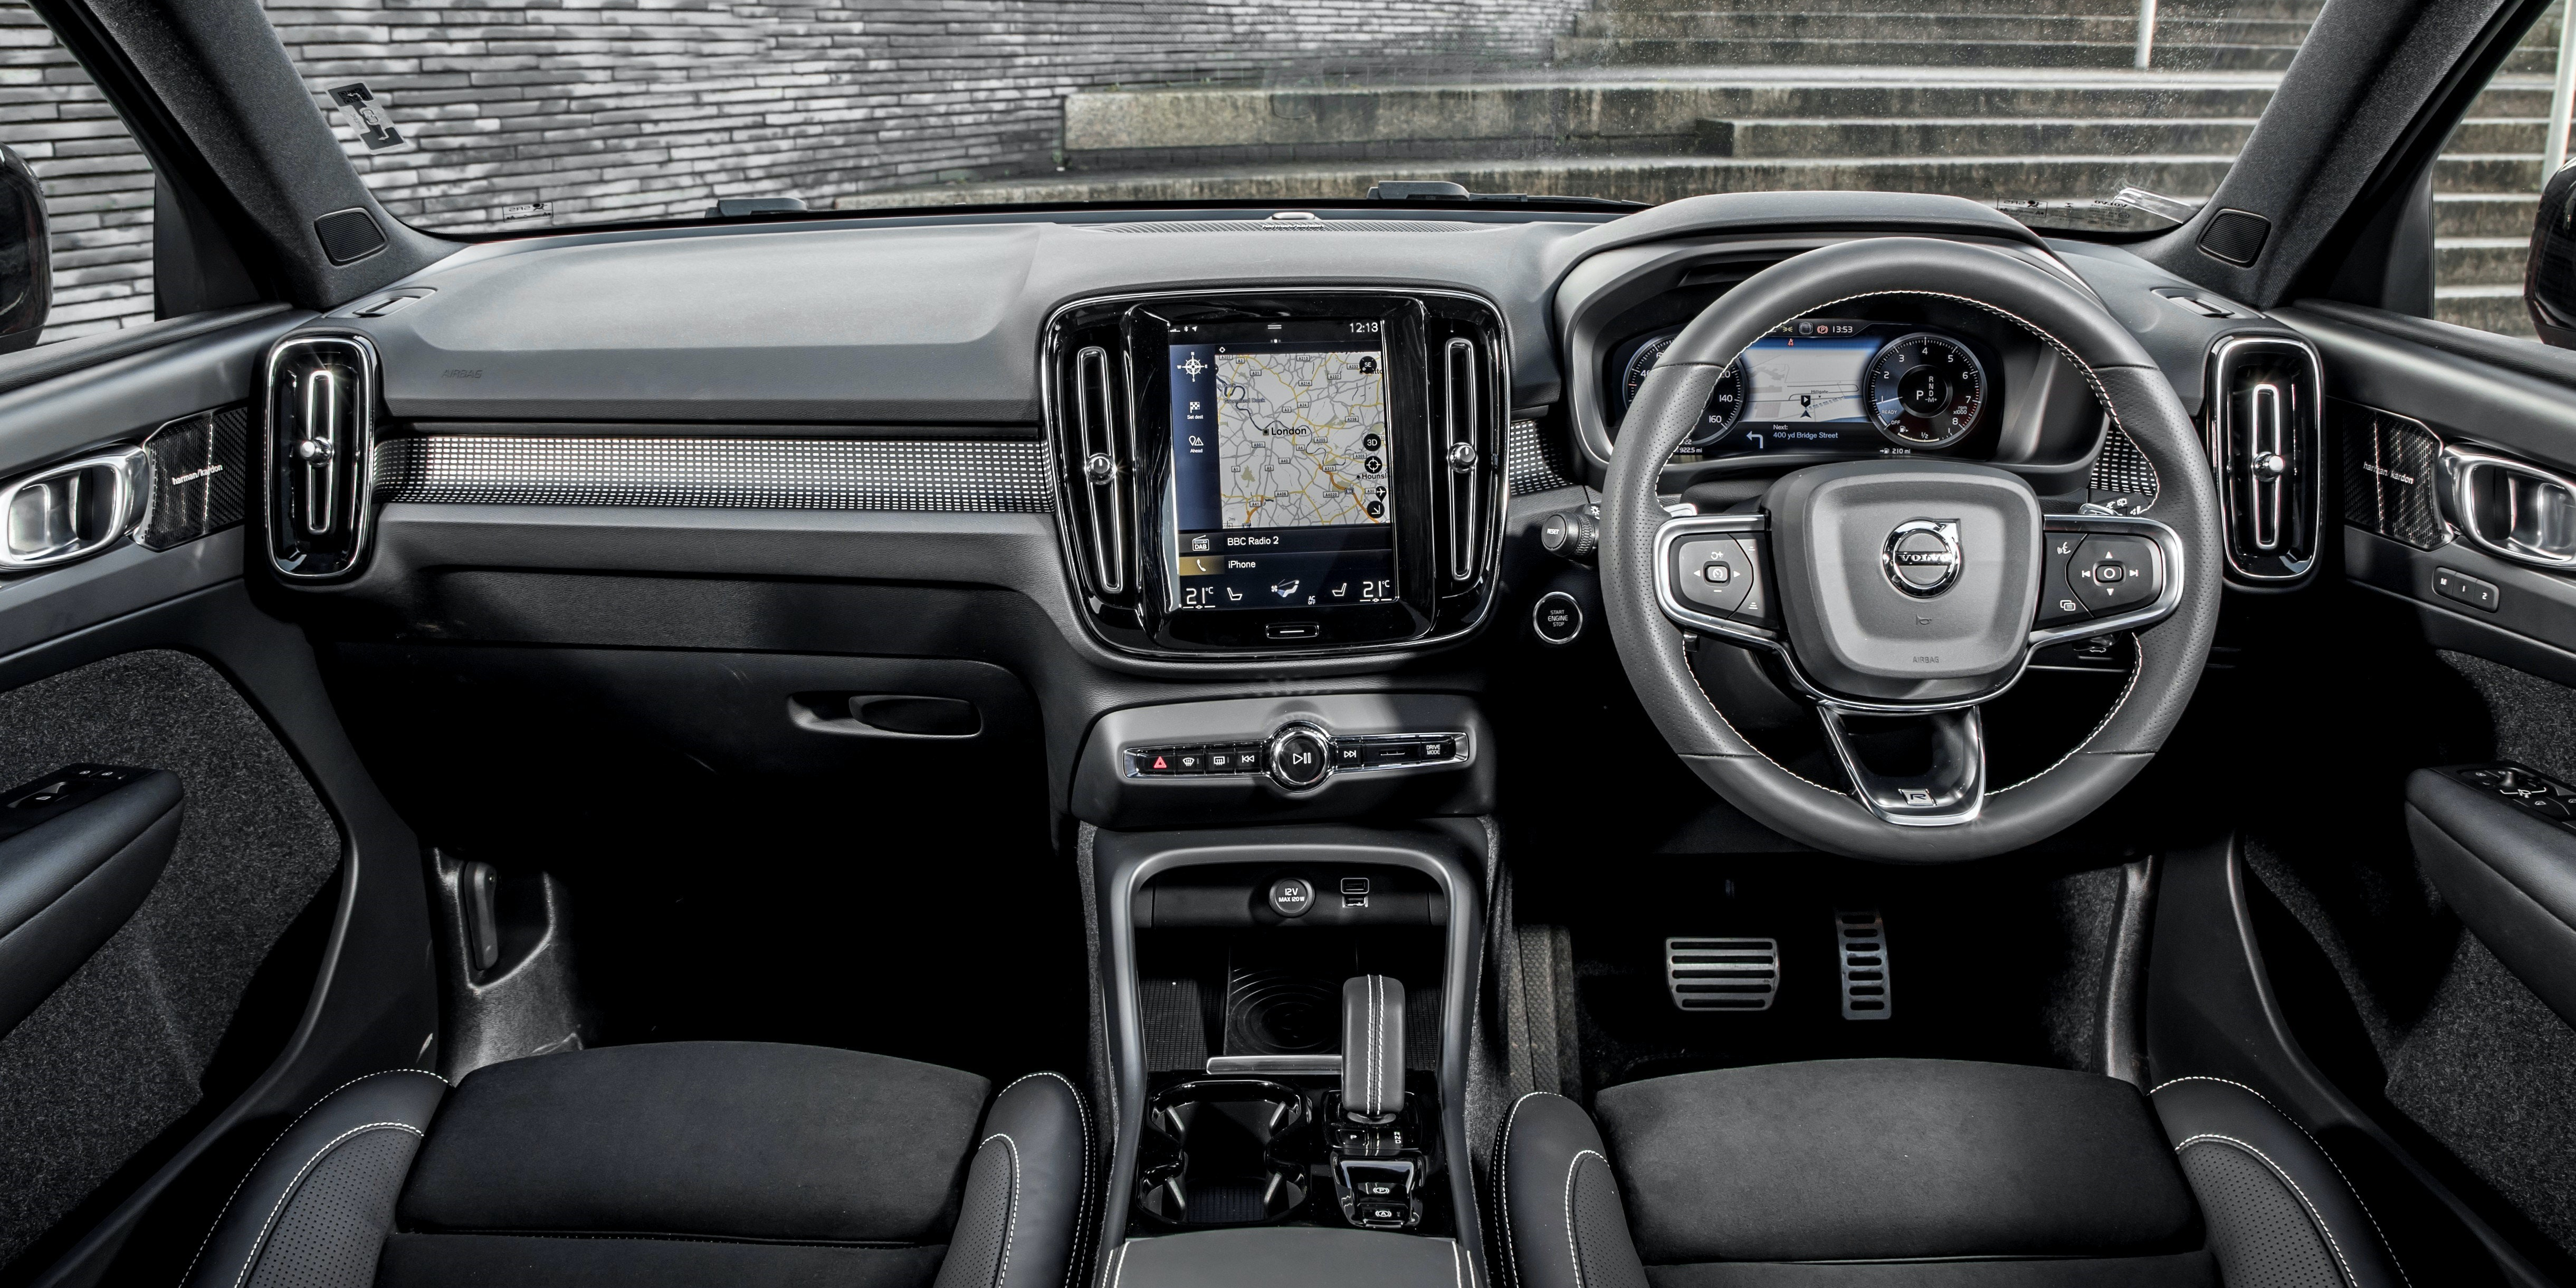 Volvo has made an interior classy enough to rival Mercedes and Audi